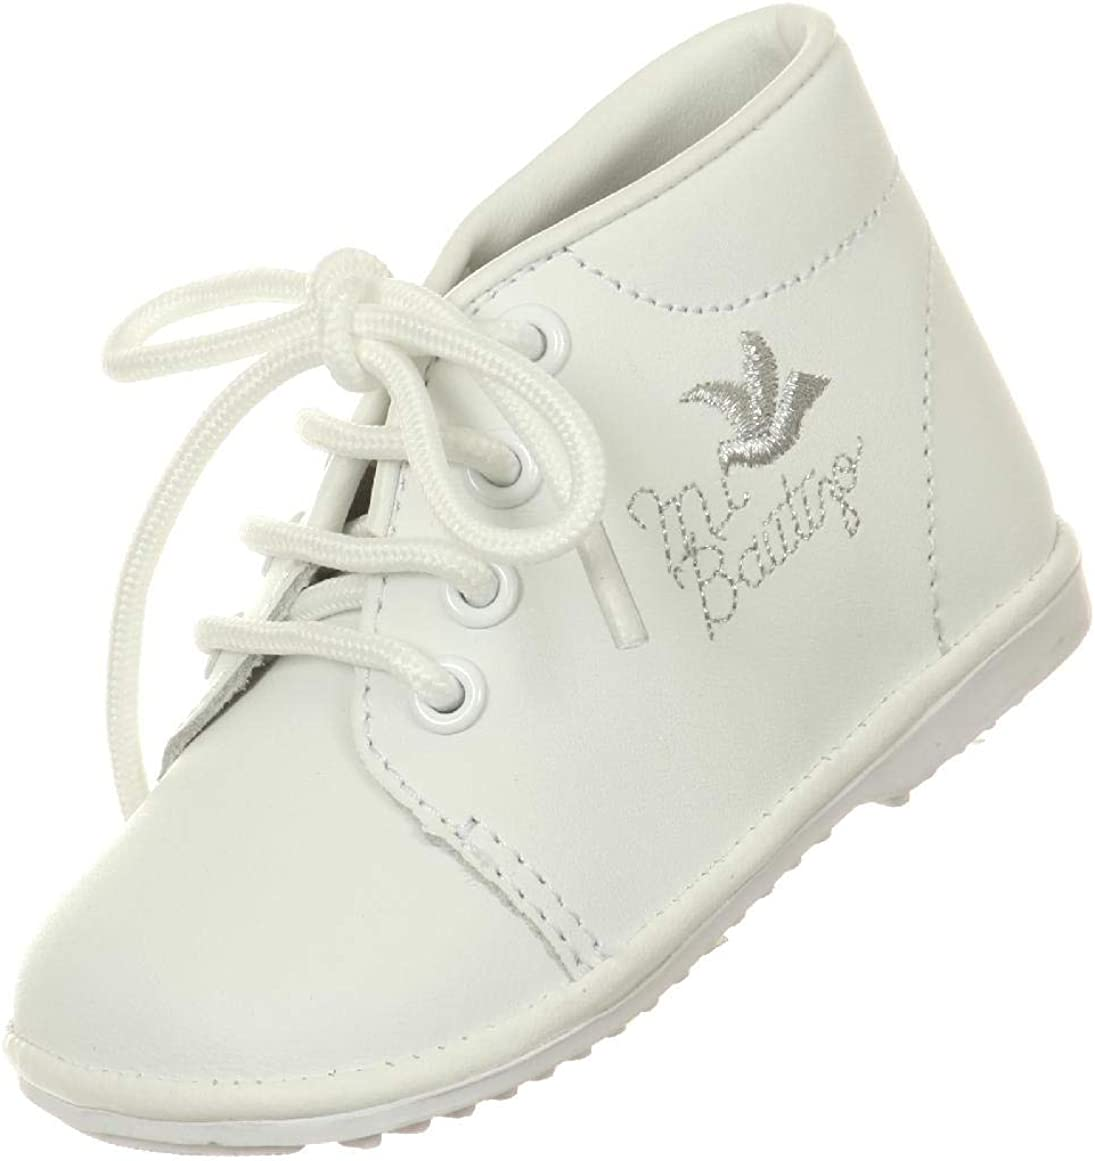 White Baby Toddler Boys Christening Baptism Ankle Shoes Oxford Embroidered Dove Bautizo